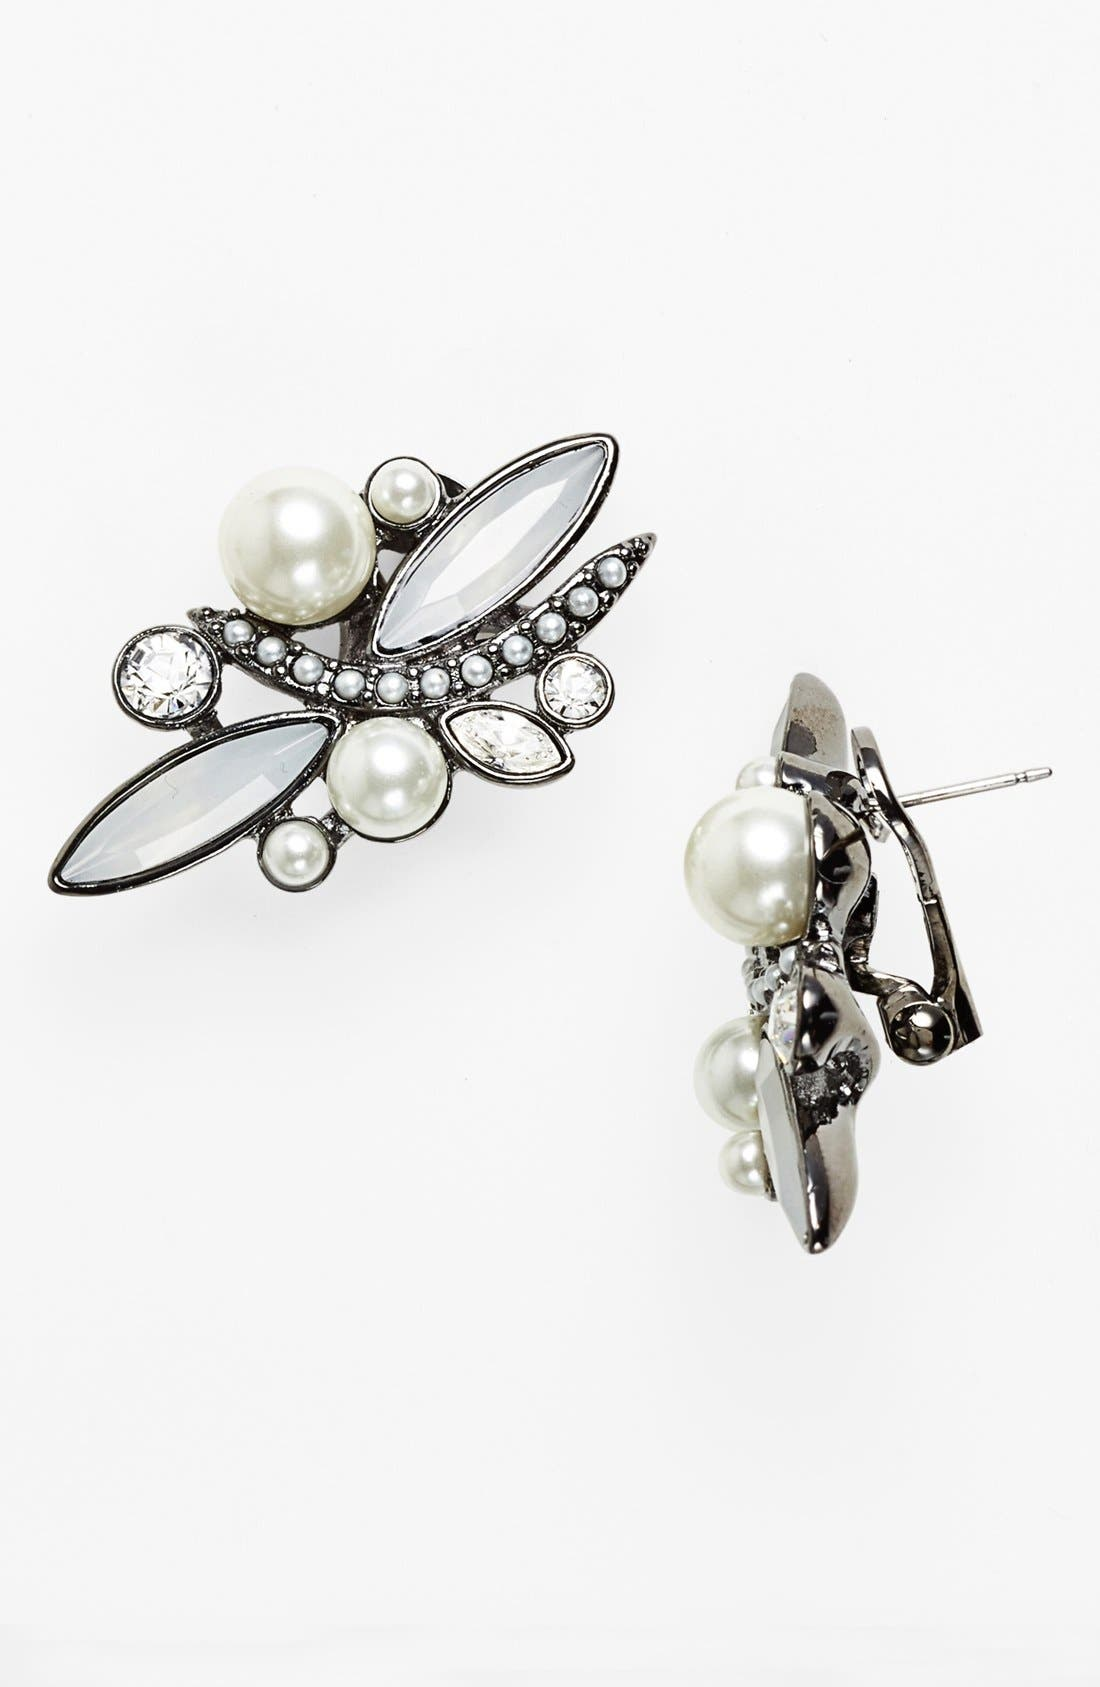 Alternate Image 1 Selected - Givenchy Glass Pearl & Crystal Stud Earrings (Nordstrom Exclusive)